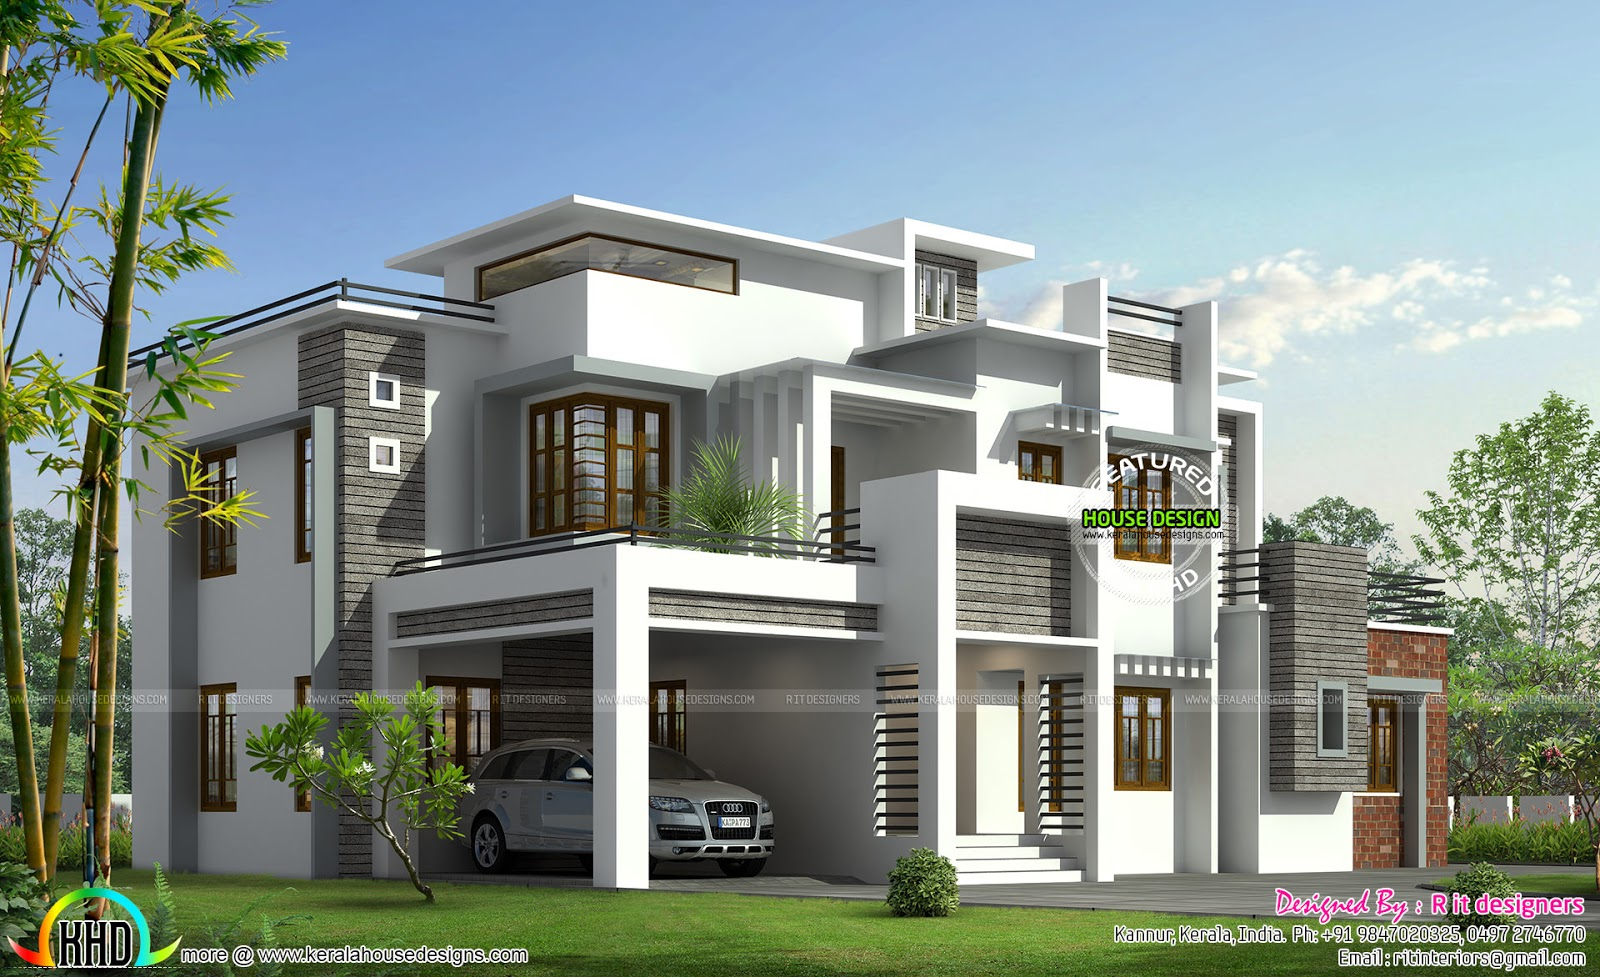 Box model contemporary house kerala home design and floor plans - Contemporary house designs ...